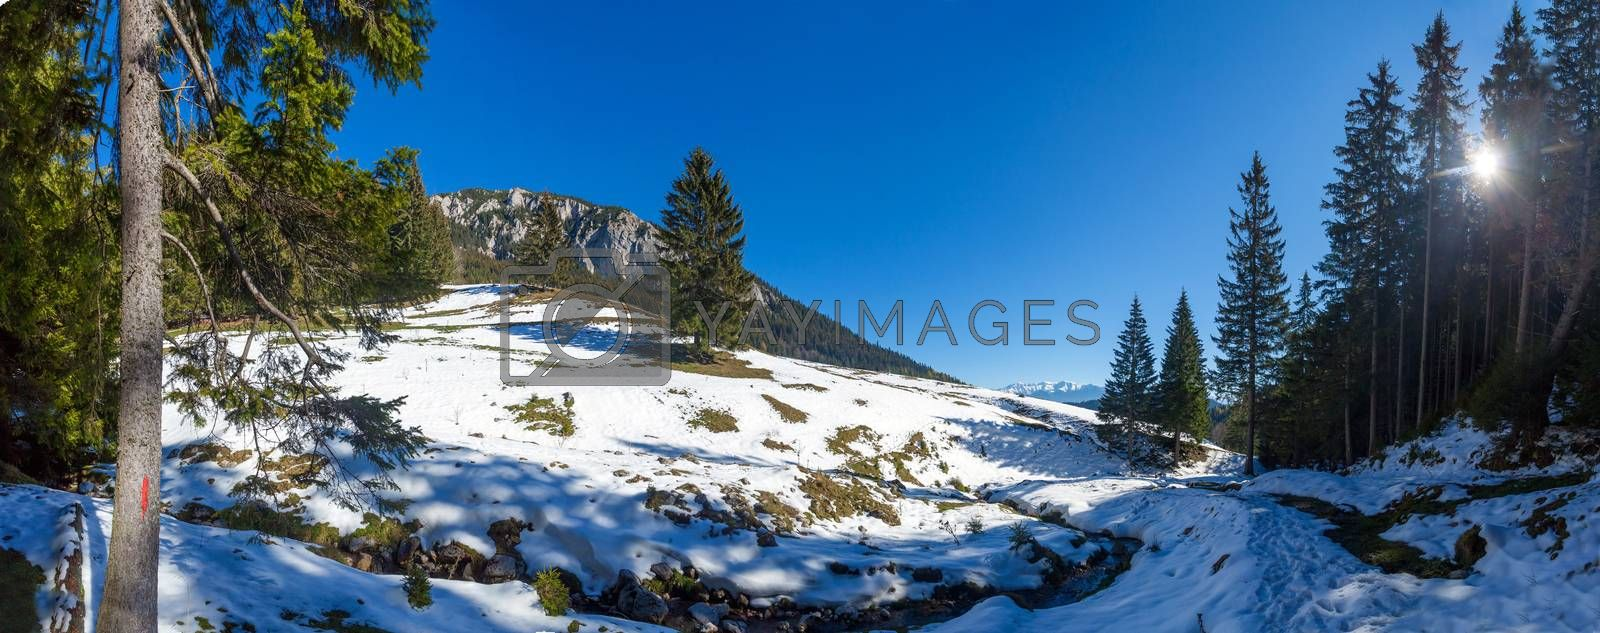 Panoramic view of Mount Piatra Craiului on winter, part of the Carpathian Range from Romania